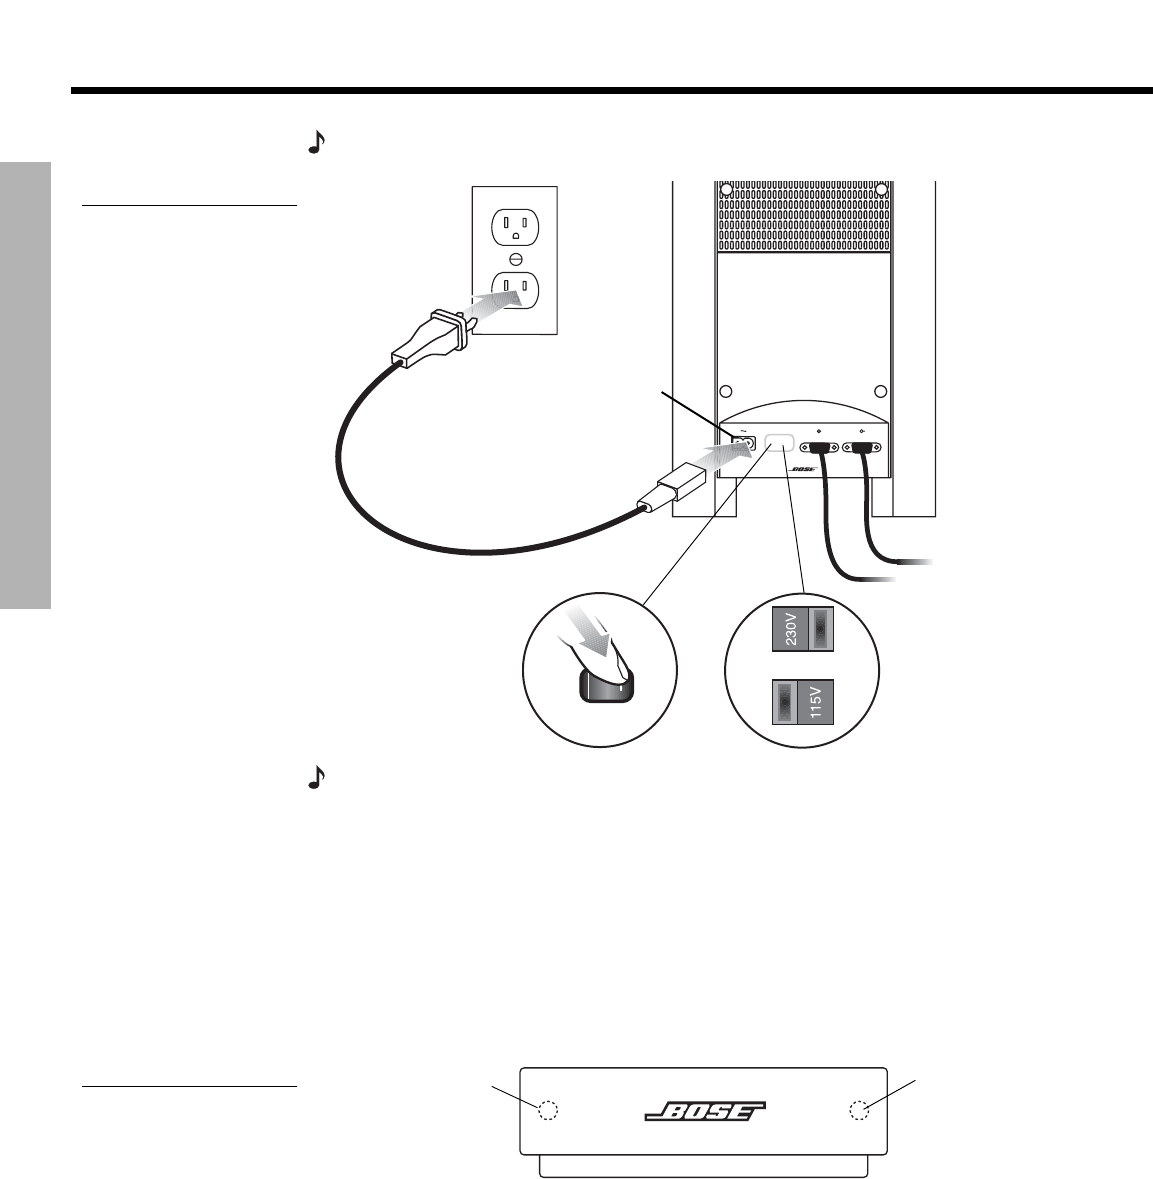 Bose Cinemate Speaker System Manual: Software Free